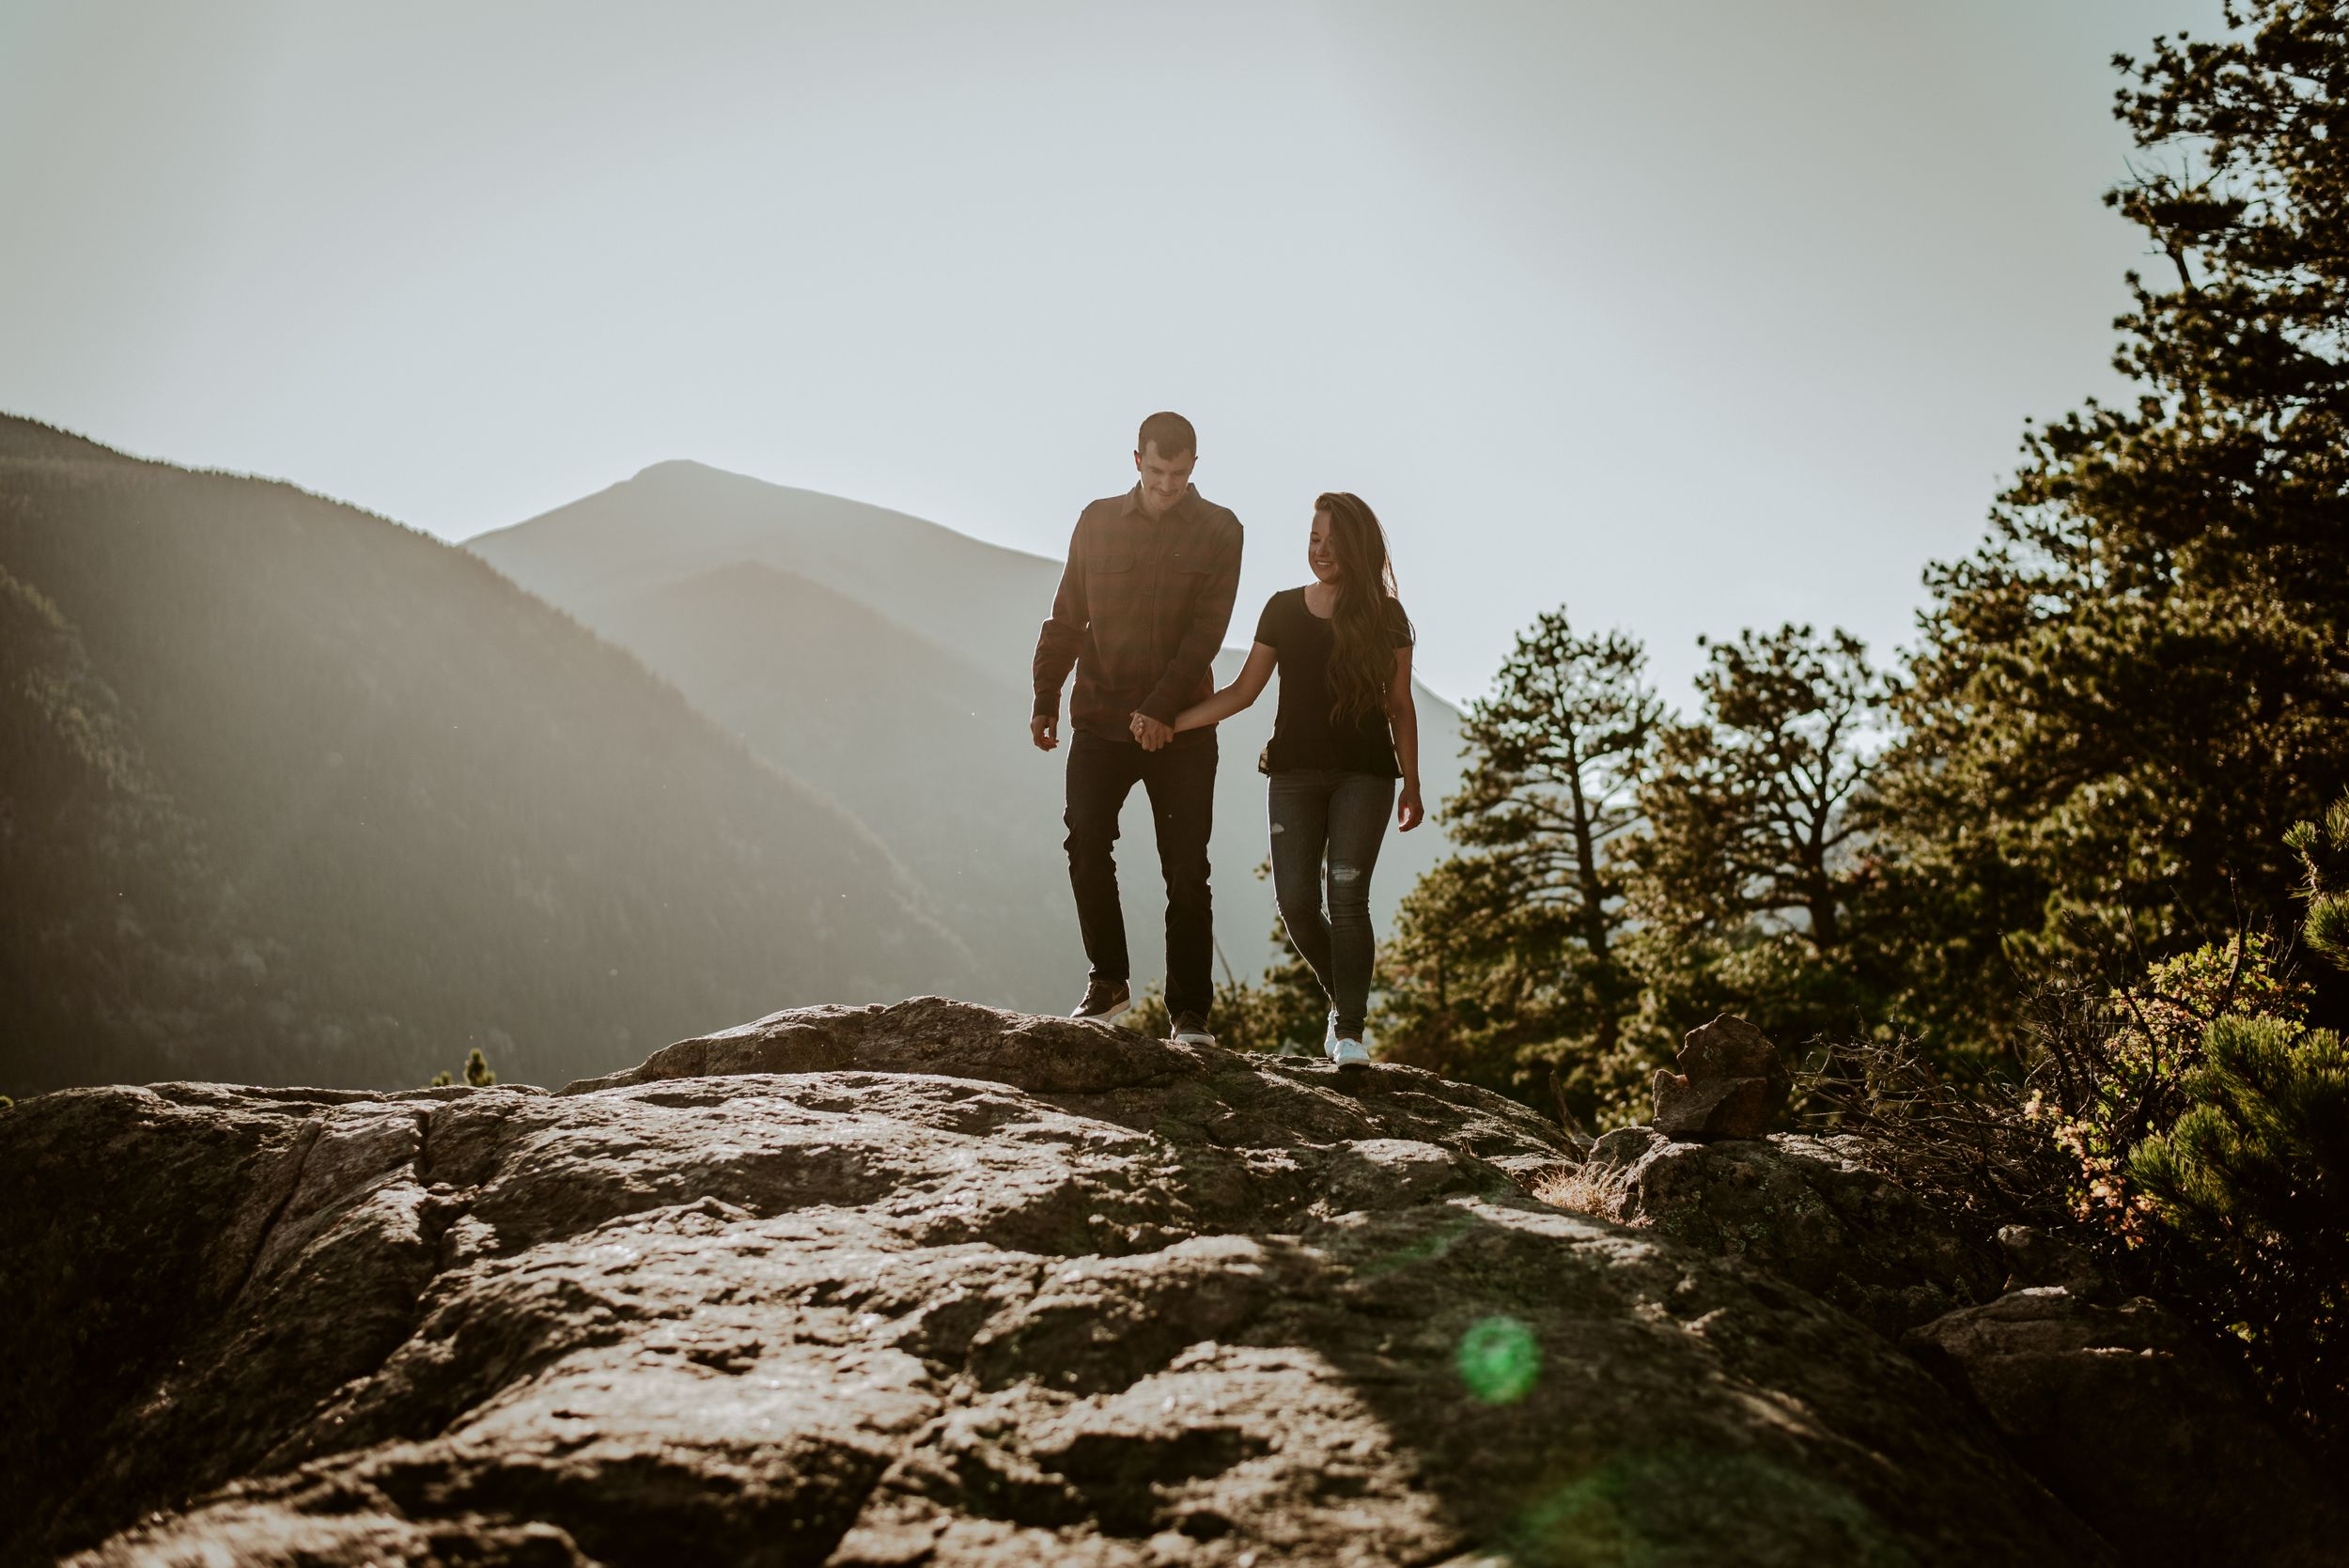 estes park adventure engagement photographer, rocky mountain national park engagement photographer